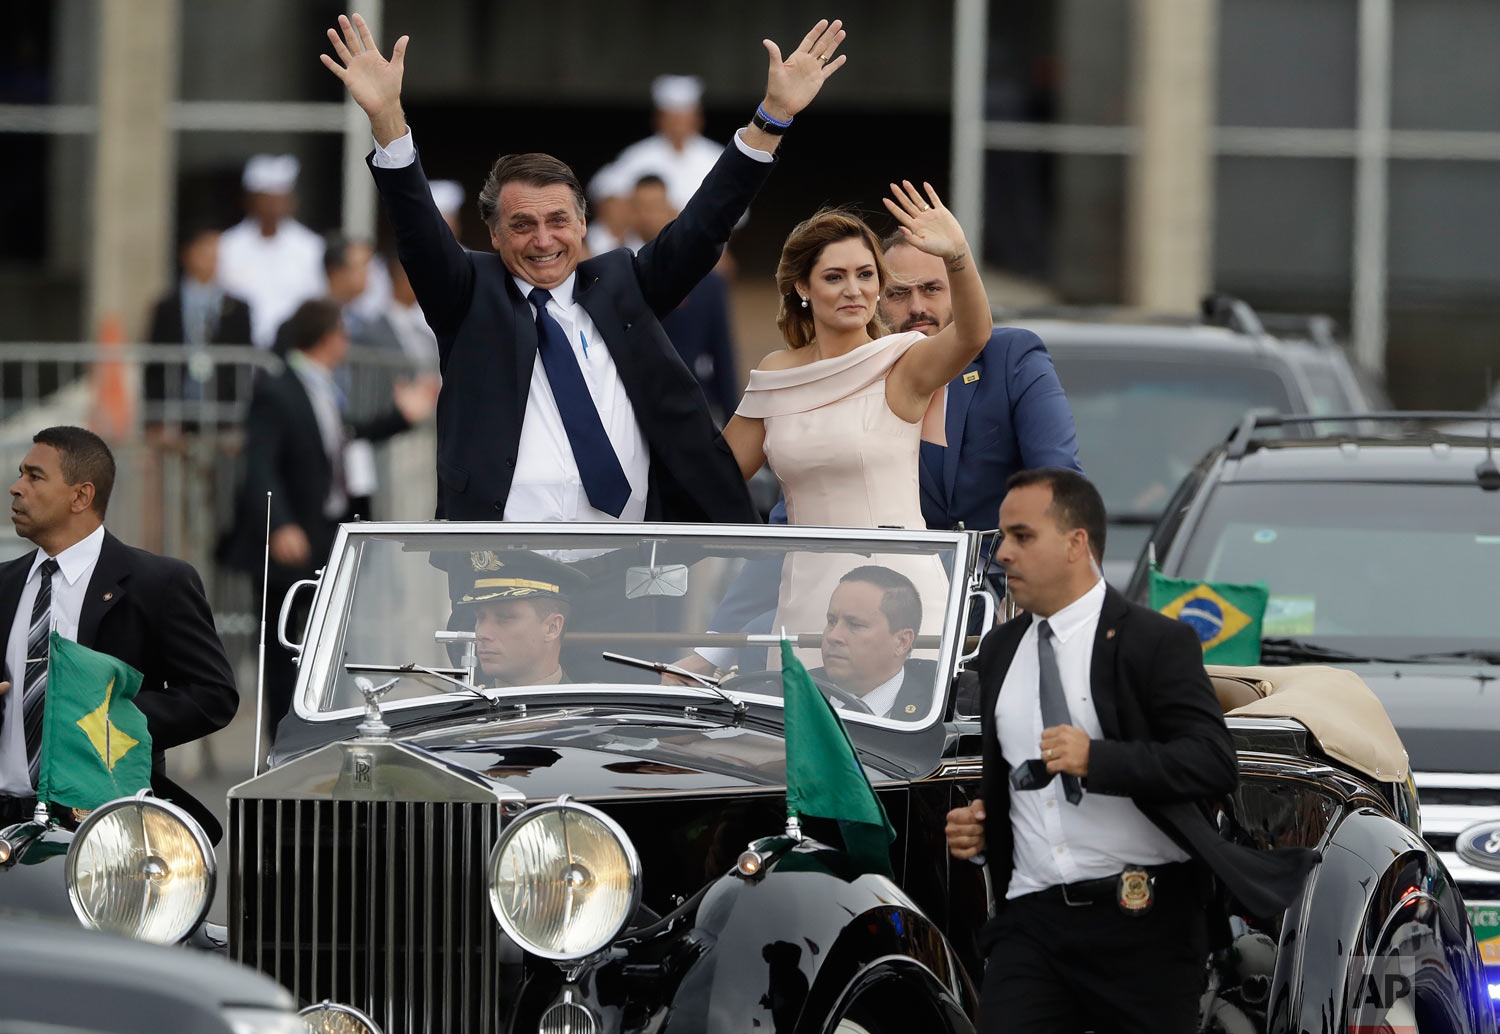 Flanked by first lady Michelle Bolsonaro, Brazil's President Jair Bolsonaro, waves after his swearing-in ceremony in Brasilia, Brazil, Jan. 1, 2019. (AP Photo/Andre Penner)